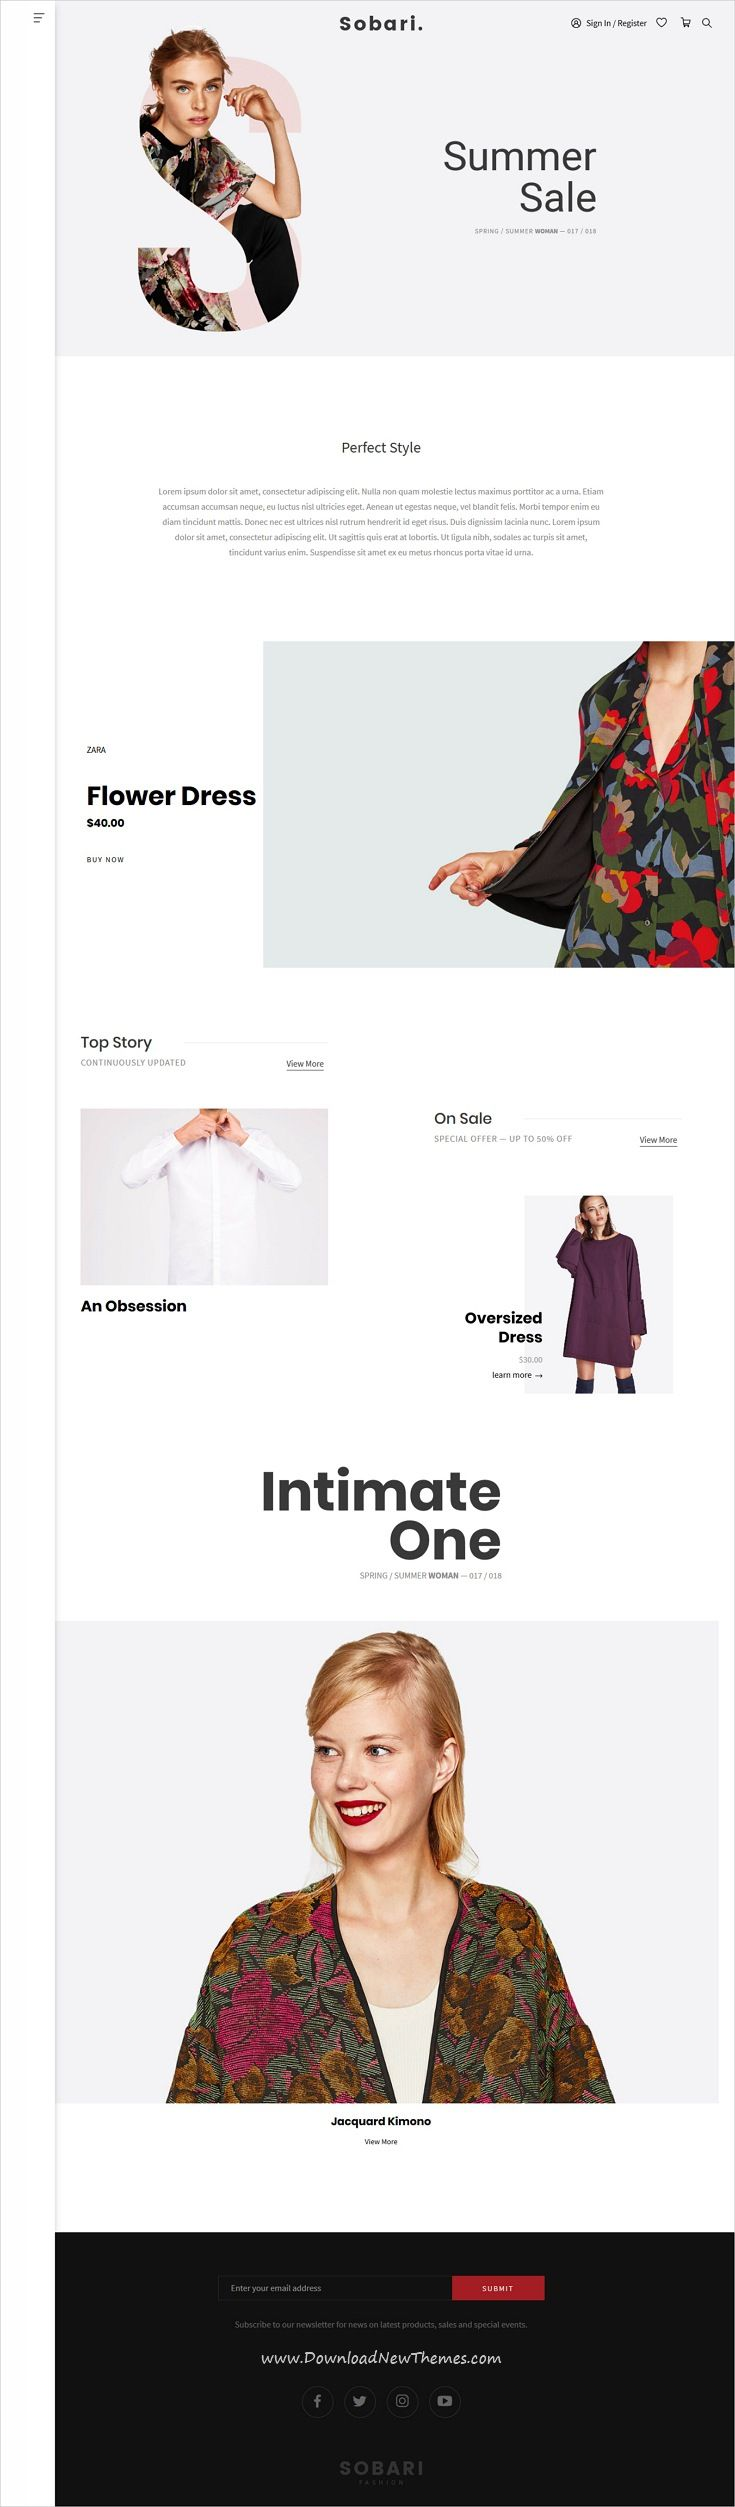 Sobari is clean, #minimalist and modern design 9in1 responsive WooCommerce #WordPress theme for stunning fashion #store eCommerce #website to live preview & download click on image or Visit 👆